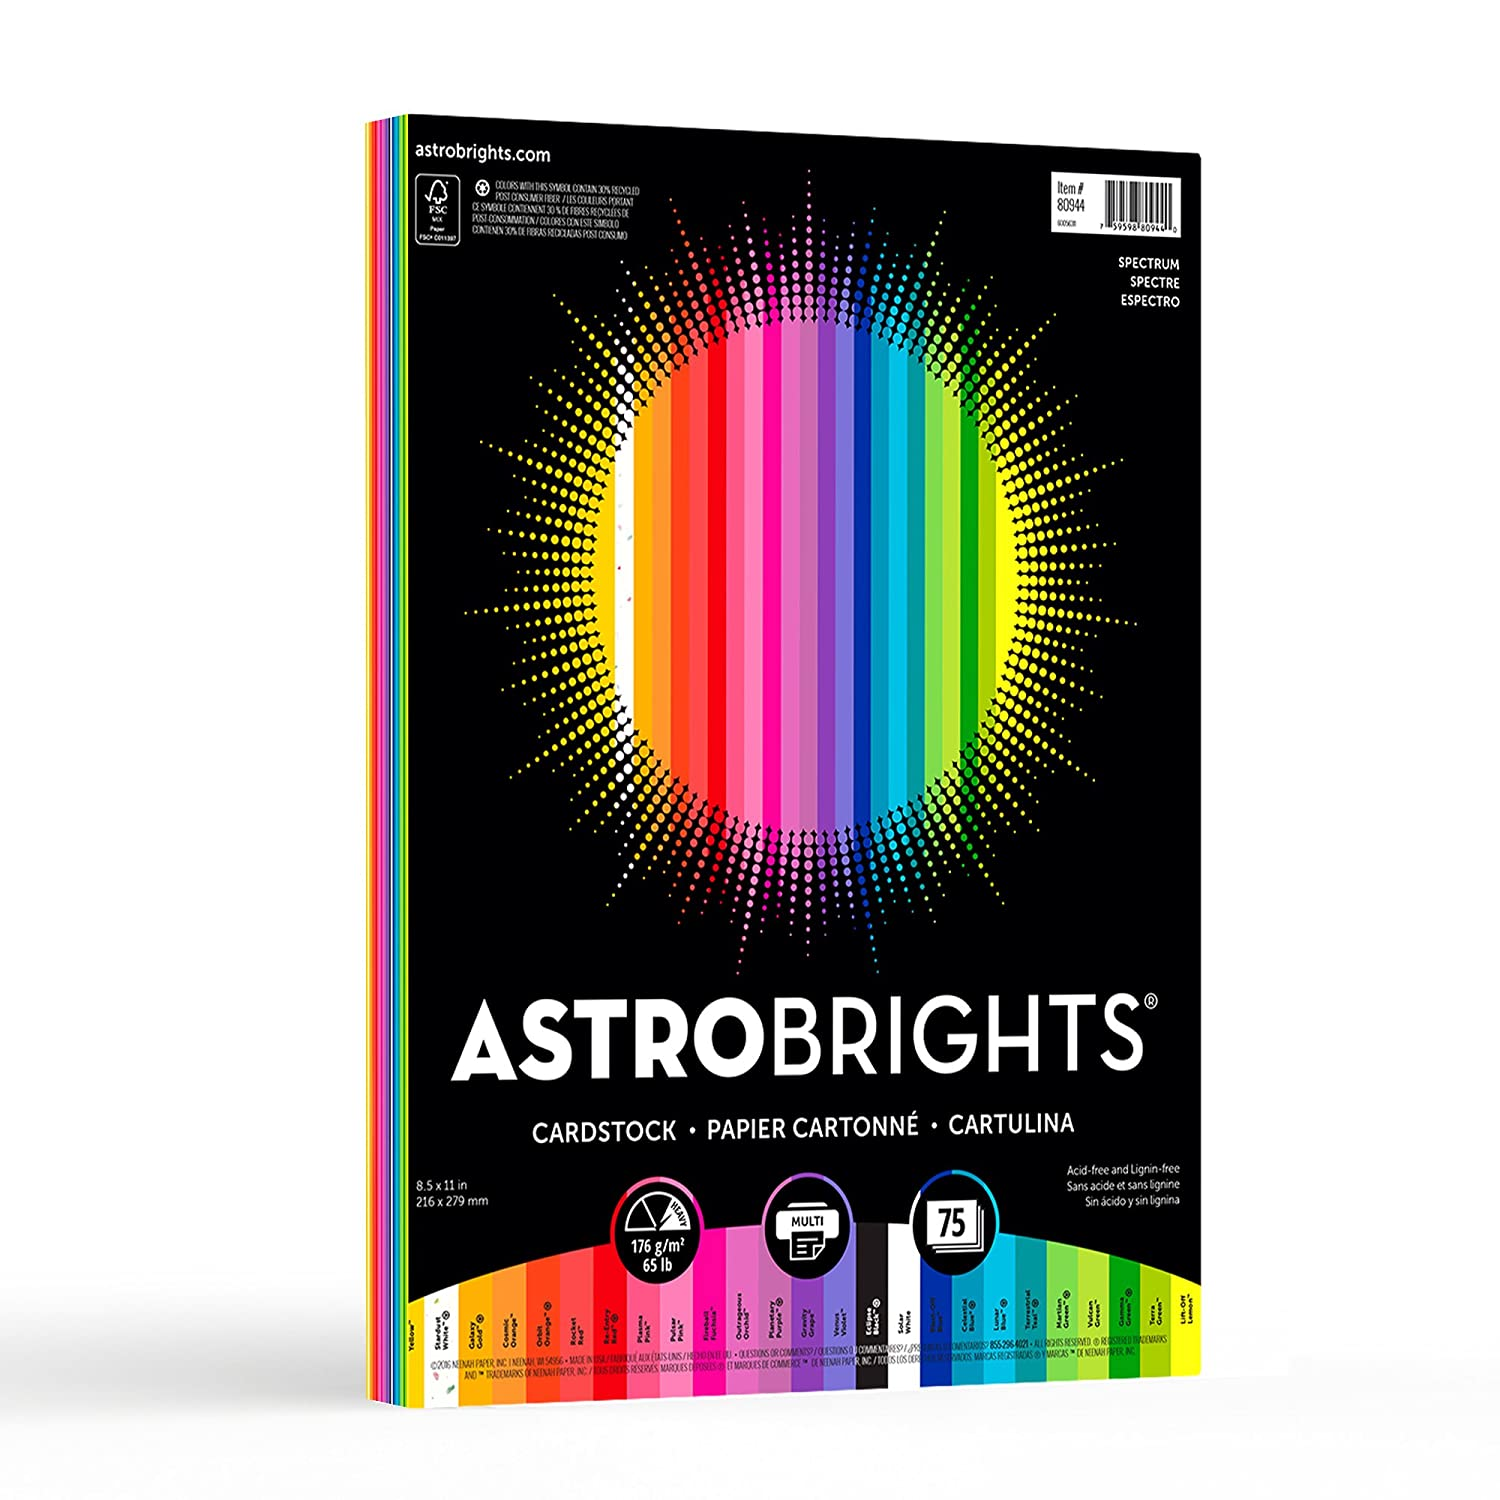 Gold color cardstock paper 5x7 - Astrobrights Colored Cardstock 8 5 X 11 65 Lb 176 Gsm